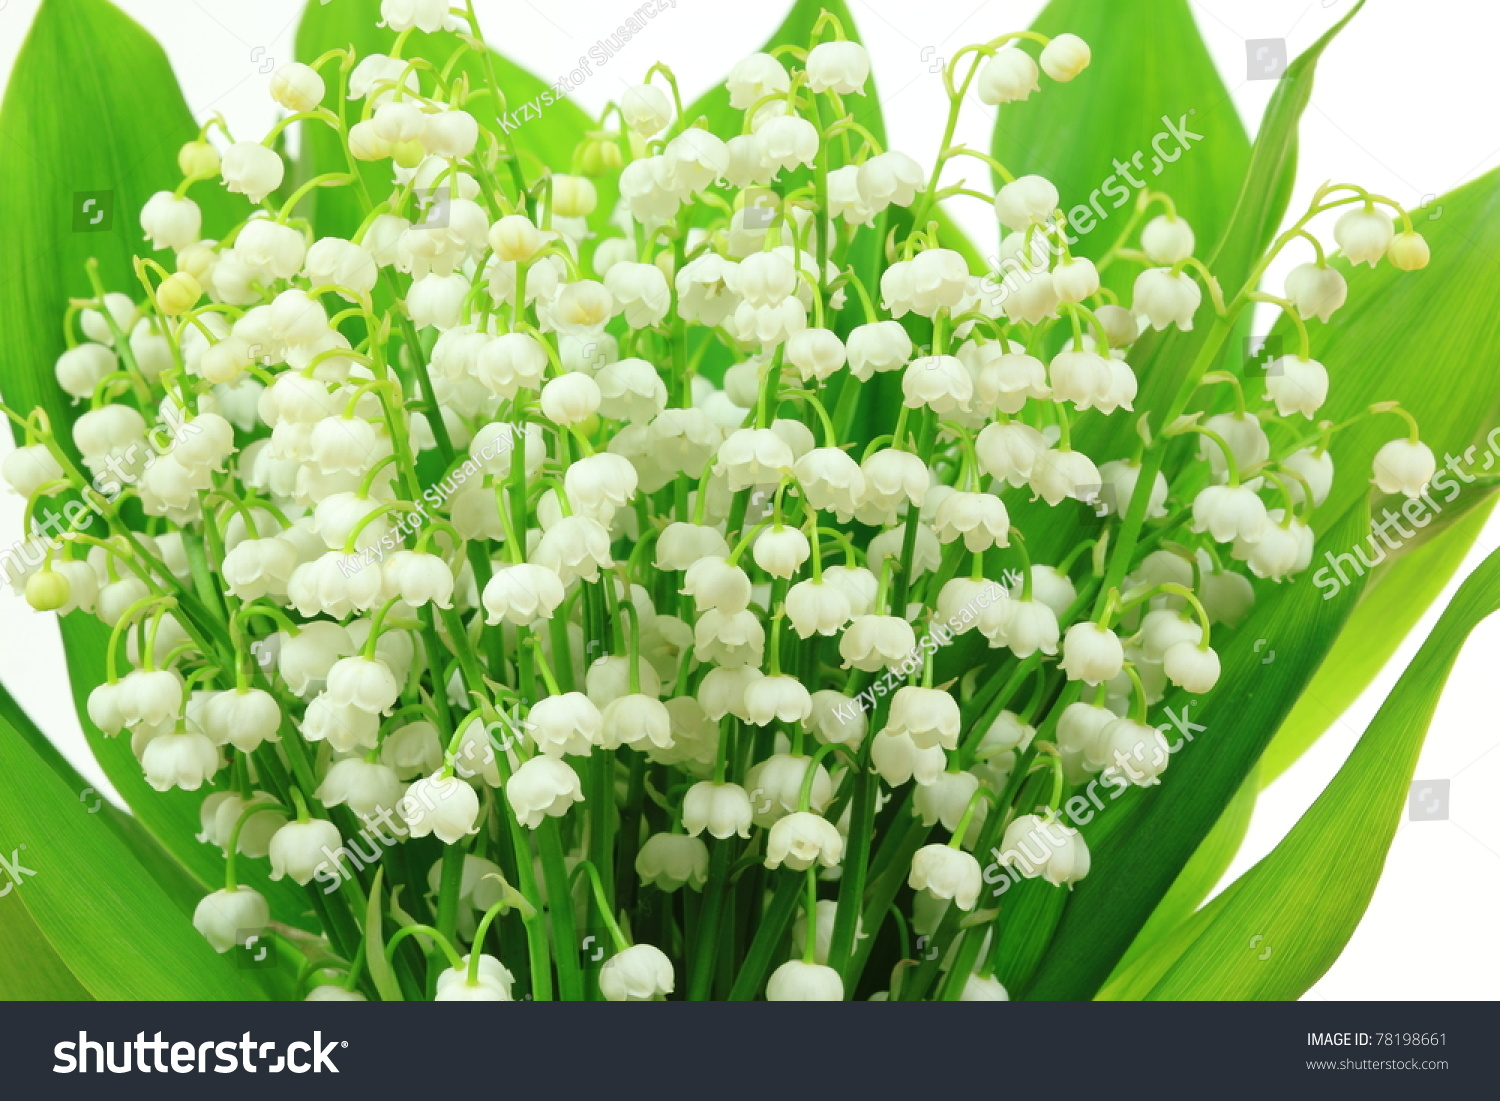 Lily valley flowers convallaria majalis flower stock photo royalty lily of the valley flowers convallaria majalis flower bunch against white background izmirmasajfo Gallery